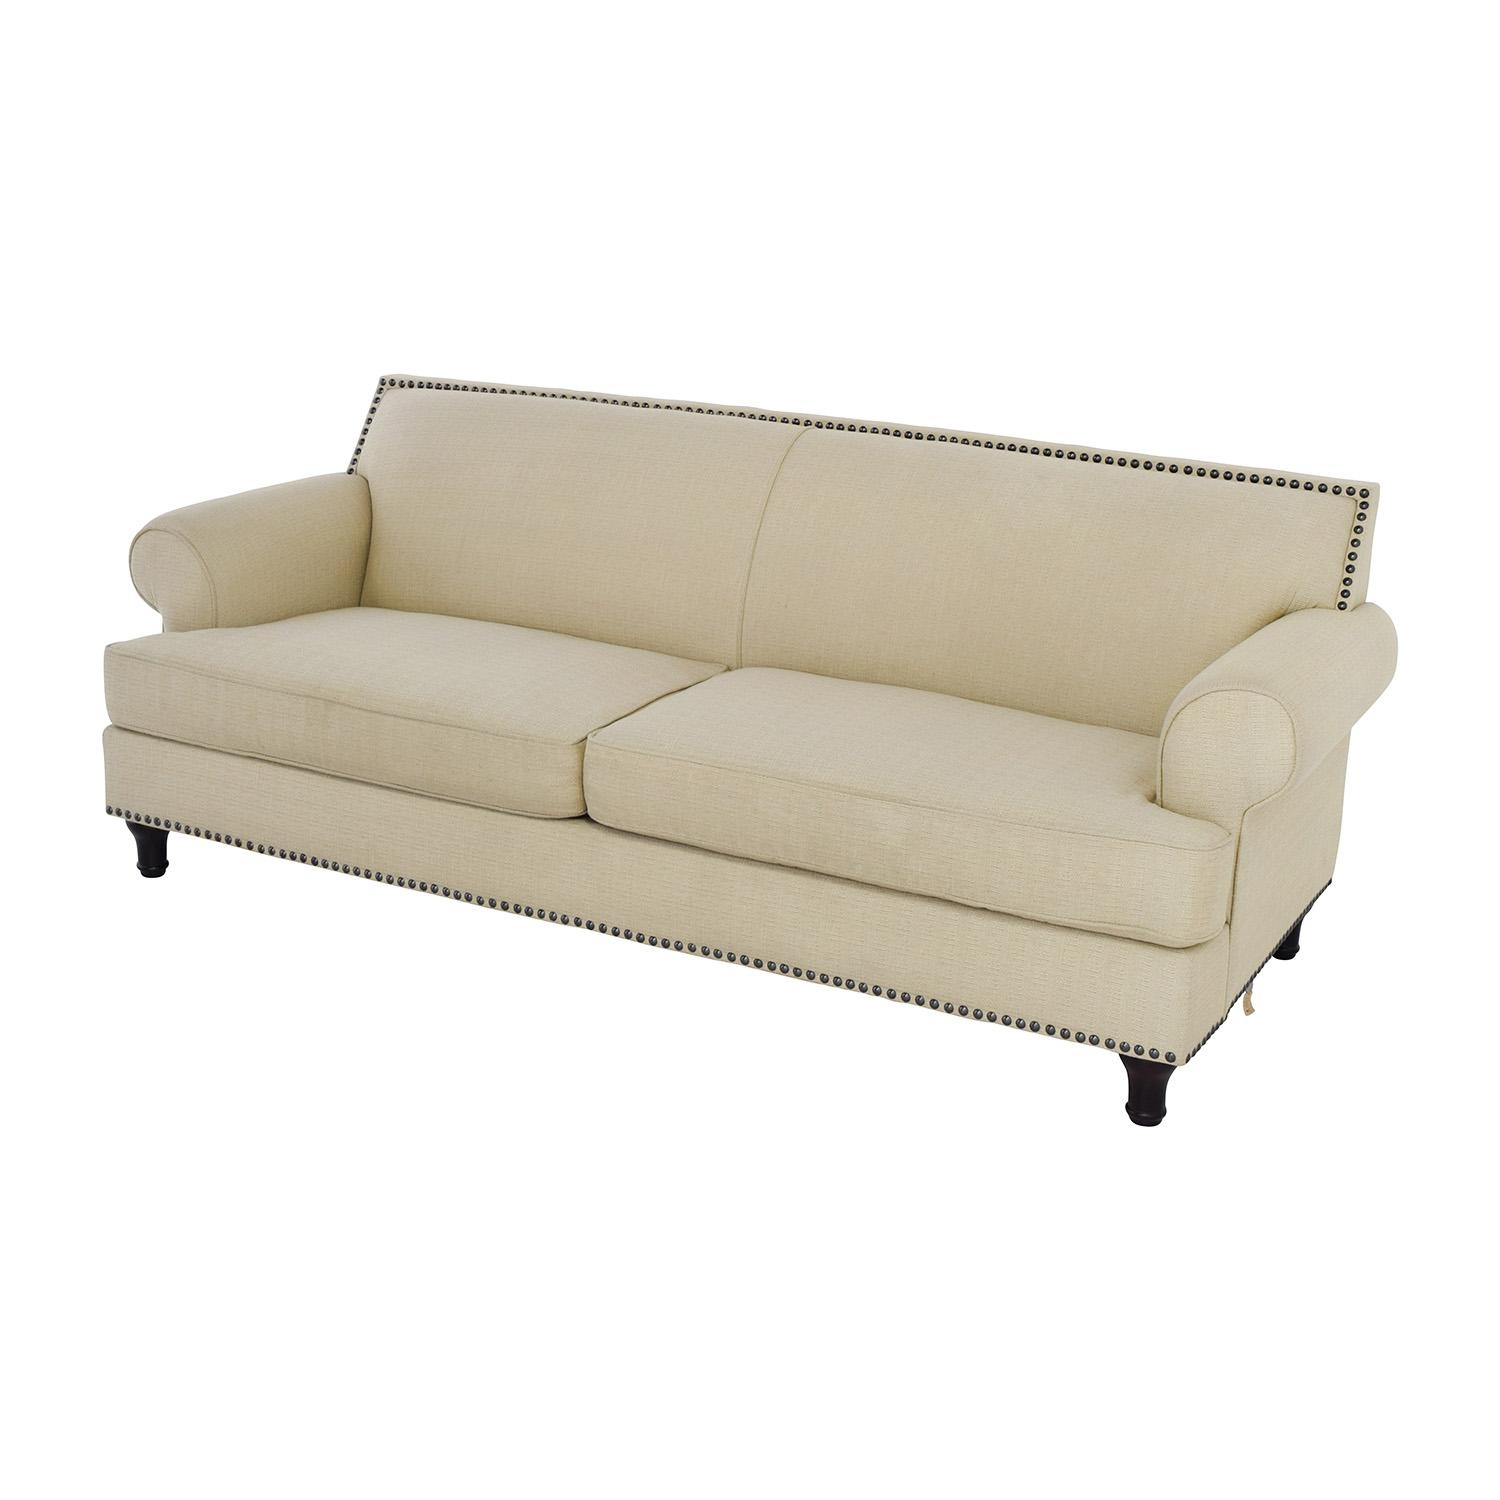 48% Off – Pier 1 Pier 1 Carmen Tan Couch With Studs / Sofas Within Pier 1 Sofas (Image 1 of 20)